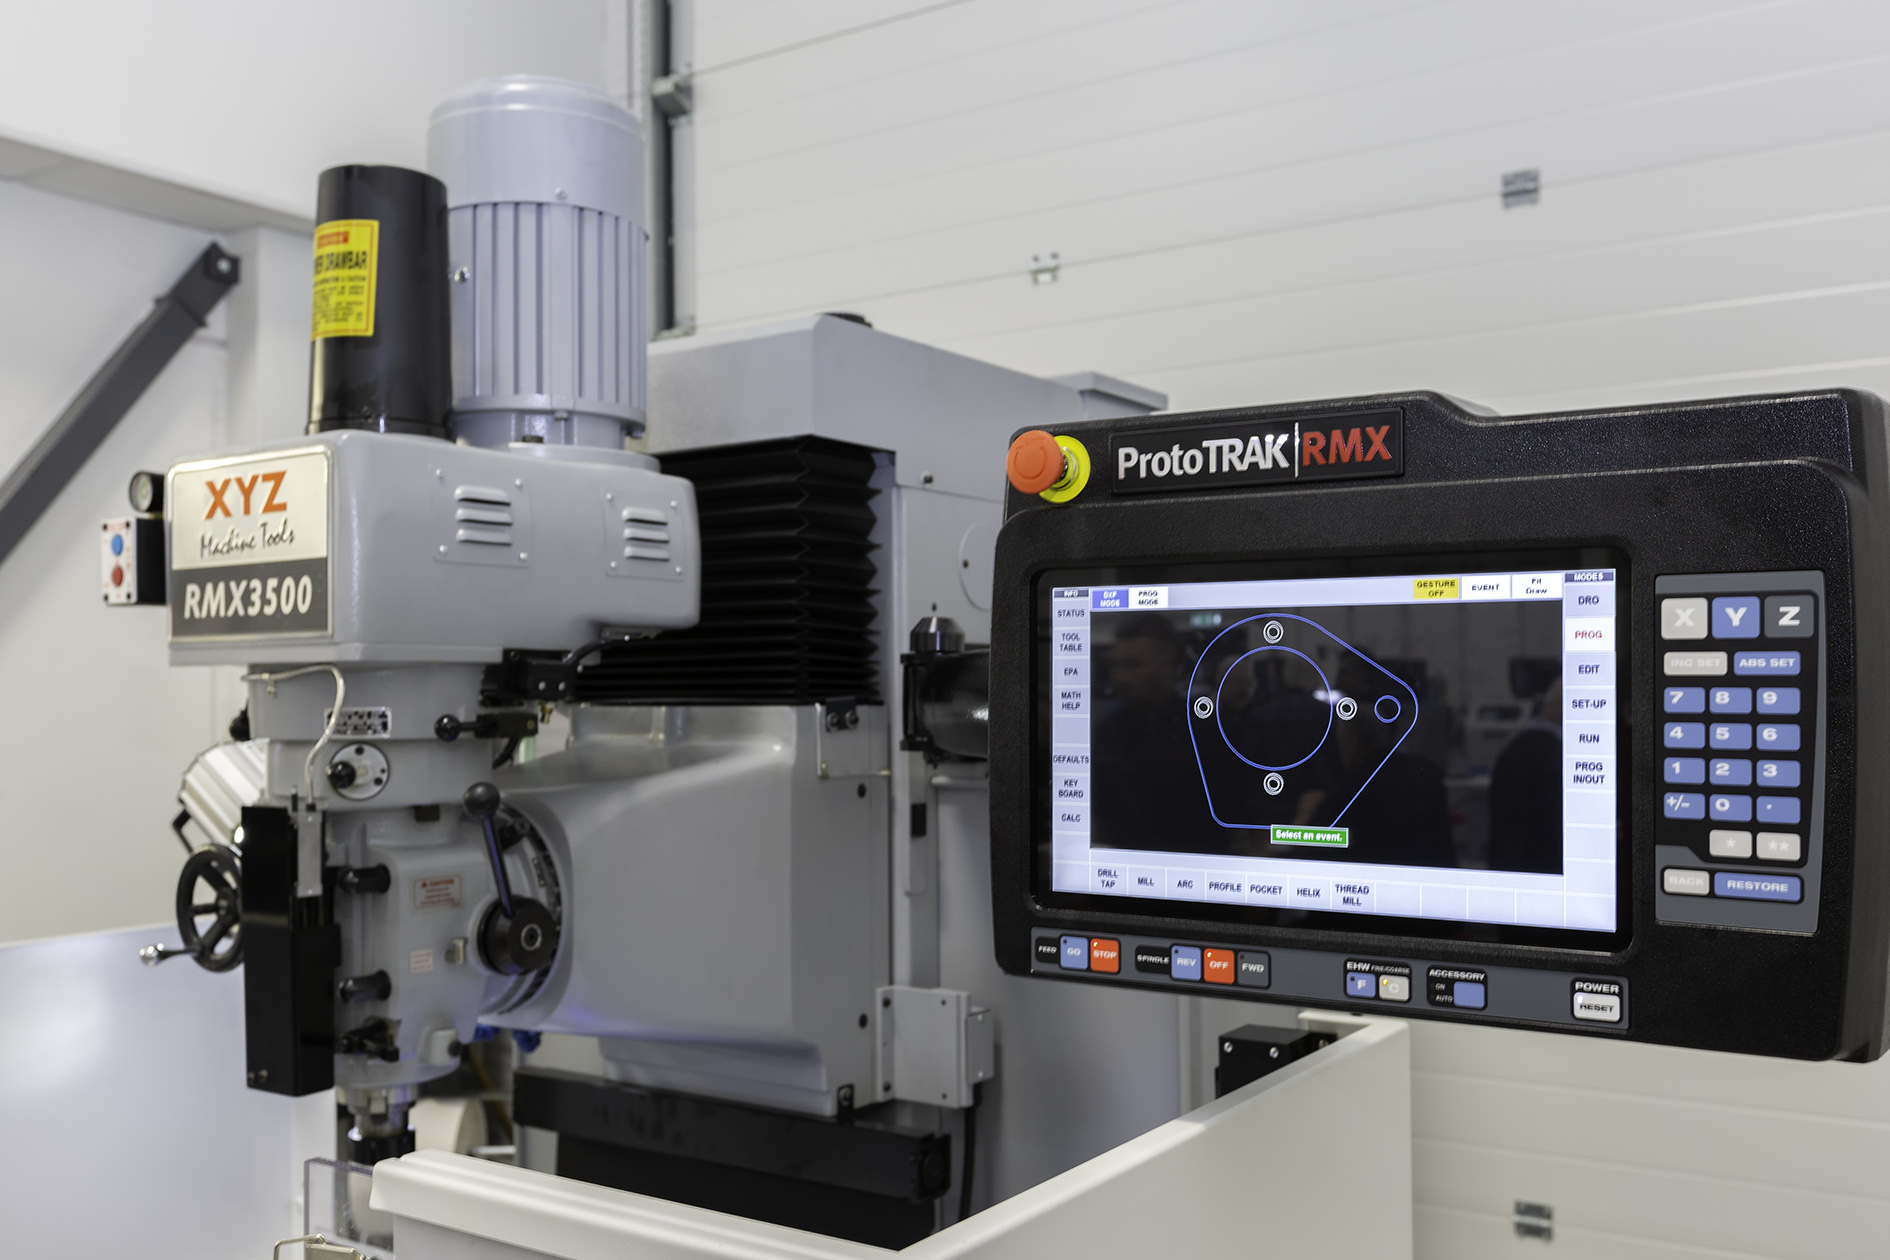 XYZ Machine Tools unveils new ProtoTRAK control at Southern